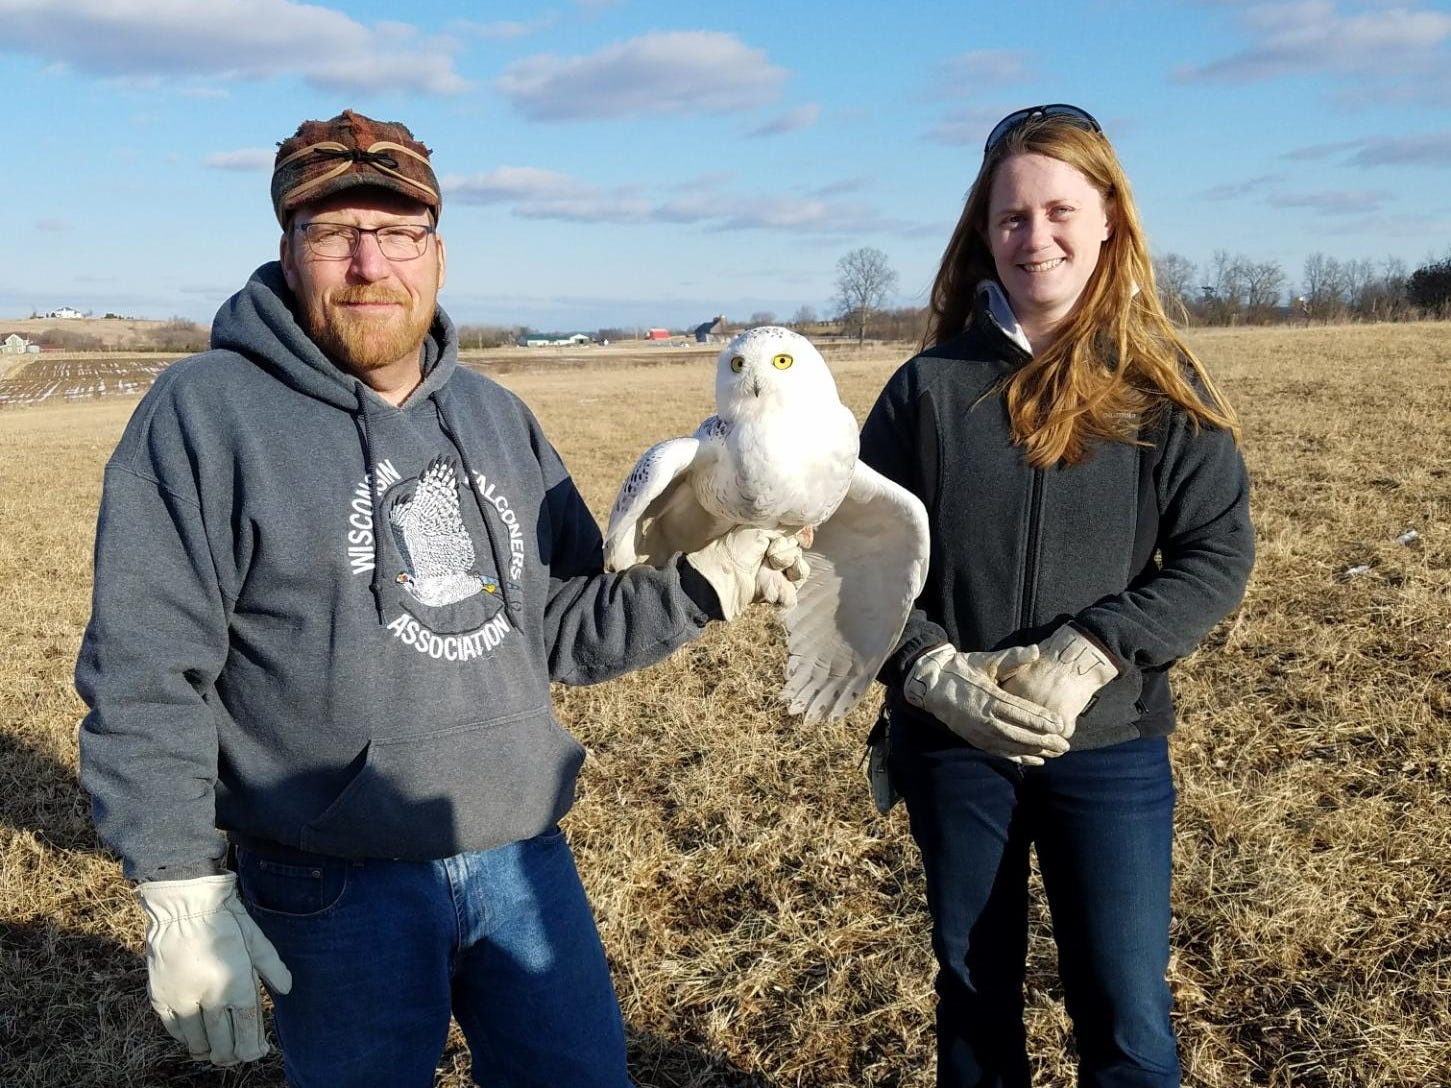 Frank Ujazdowski and Erin Giese, cofounders of Project SOAR, pose with a snowy owl captured March 2018 at Wittman Regional Airport in Oshkosh. Project SOAR aims to rescue snowy owls, as well as other raptors, from airport grounds. The birds, which often breed and hunt on flat, treeless lands, present a threat to airport safety.